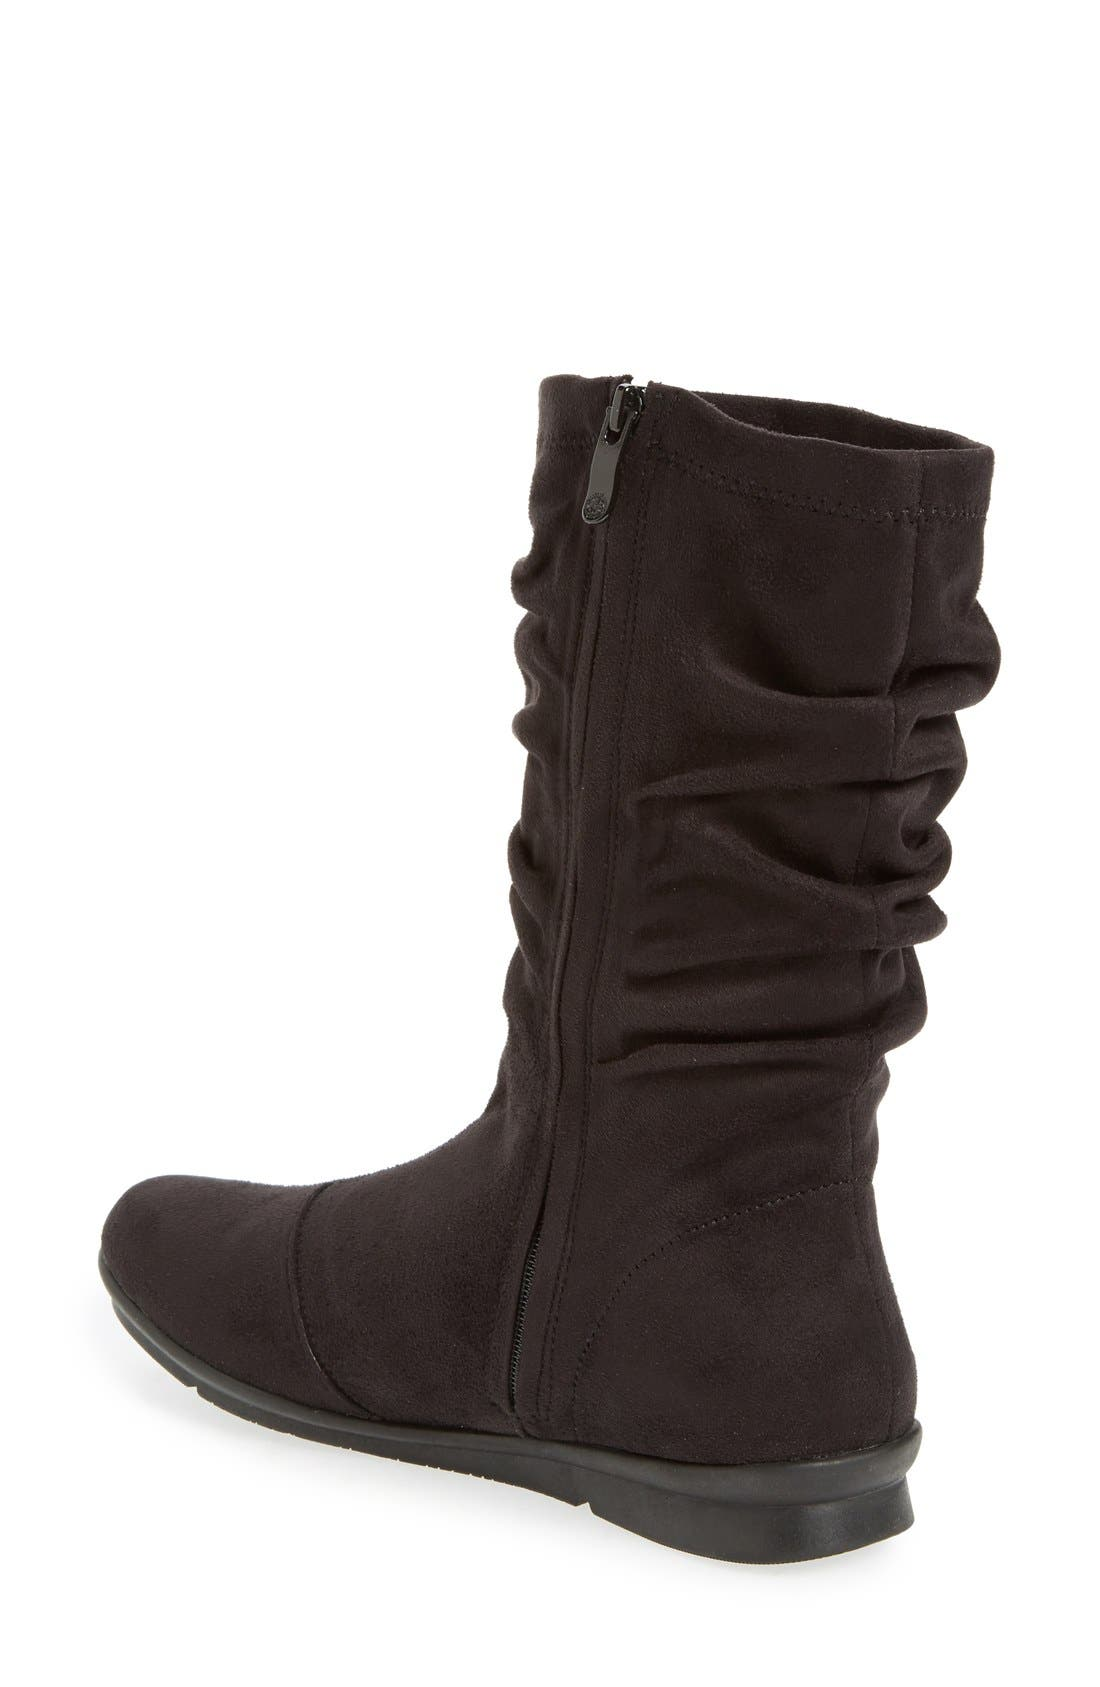 BUSSOLA,                             Concord Ruched Boot,                             Alternate thumbnail 2, color,                             001